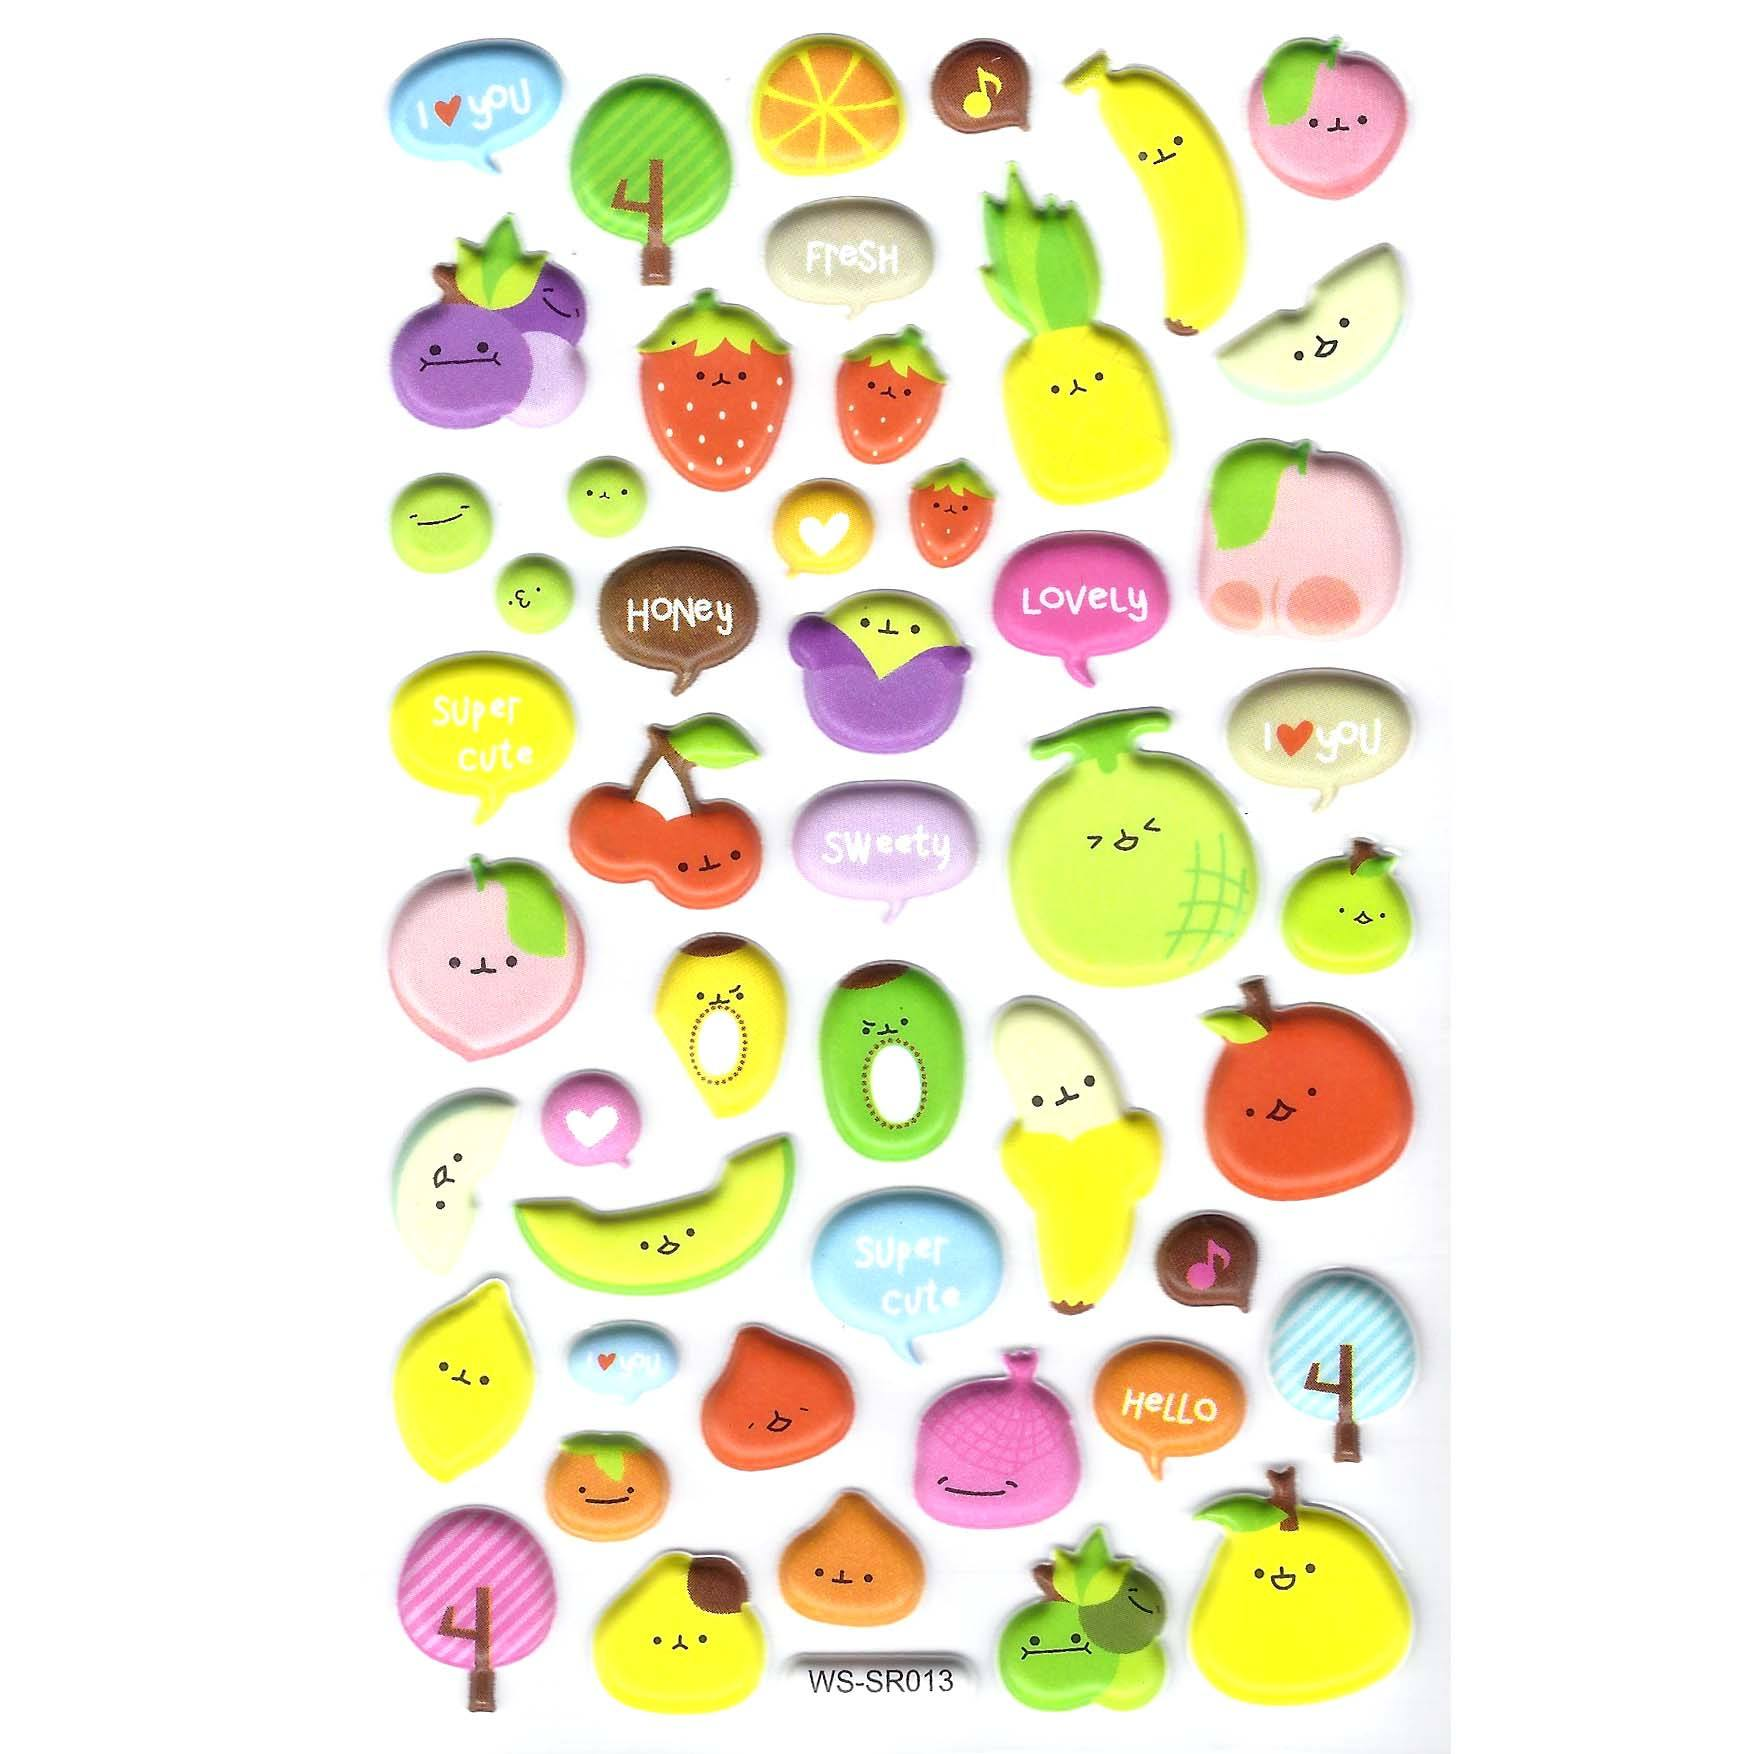 Super Cute Fruit Kiwi Banana Melon Strawberry Shaped Puffy Stickers